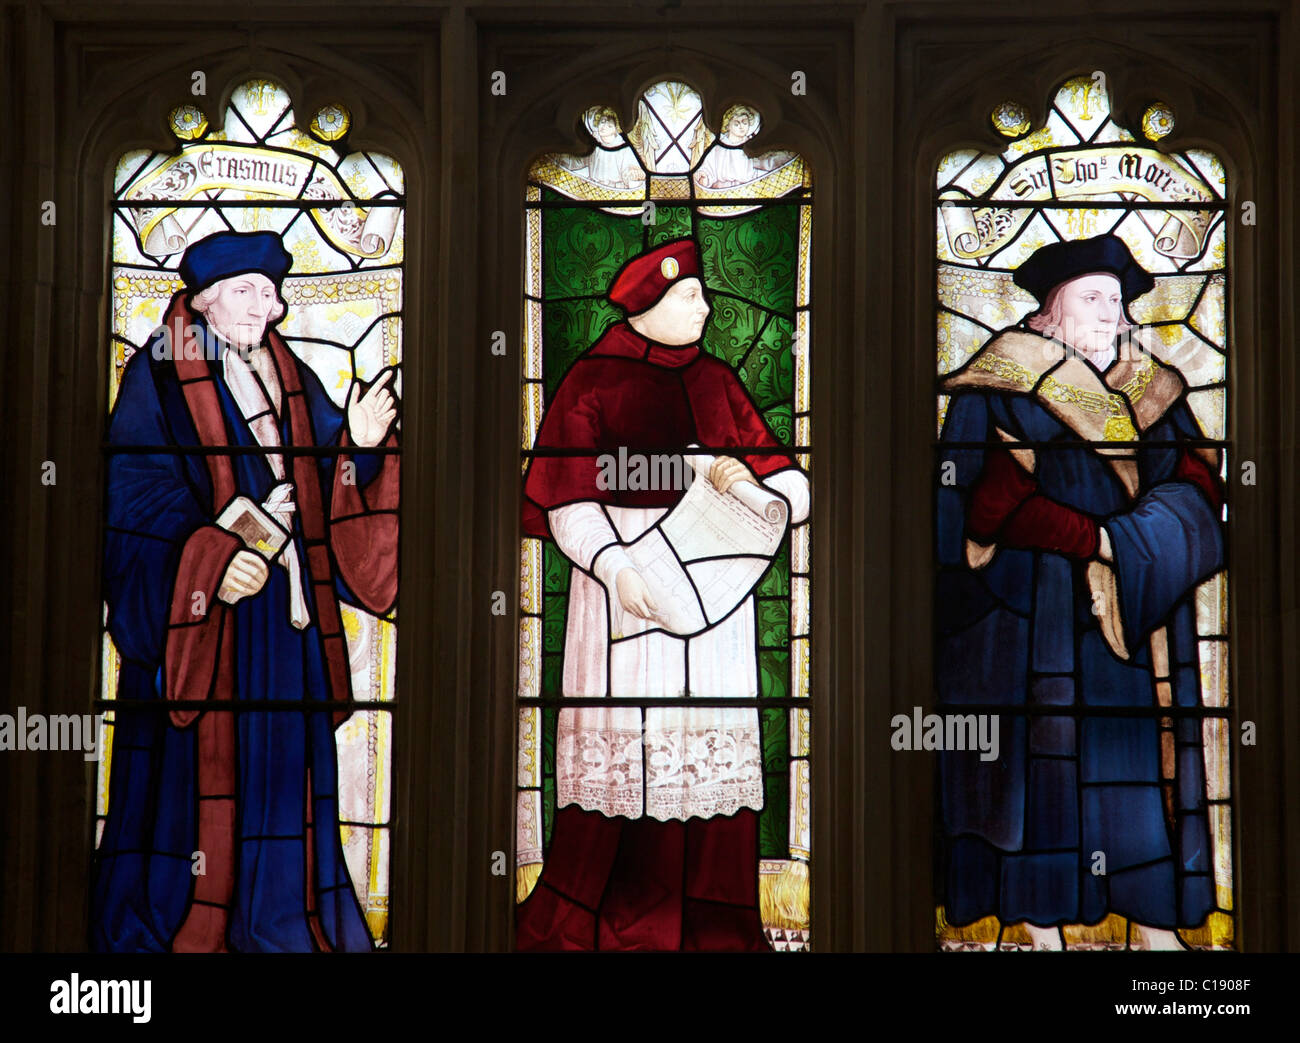 3e757554499 Stained glass panels of Erasmus, Cardinal Wolsey and Sir Thomas More, Great  Hall dining